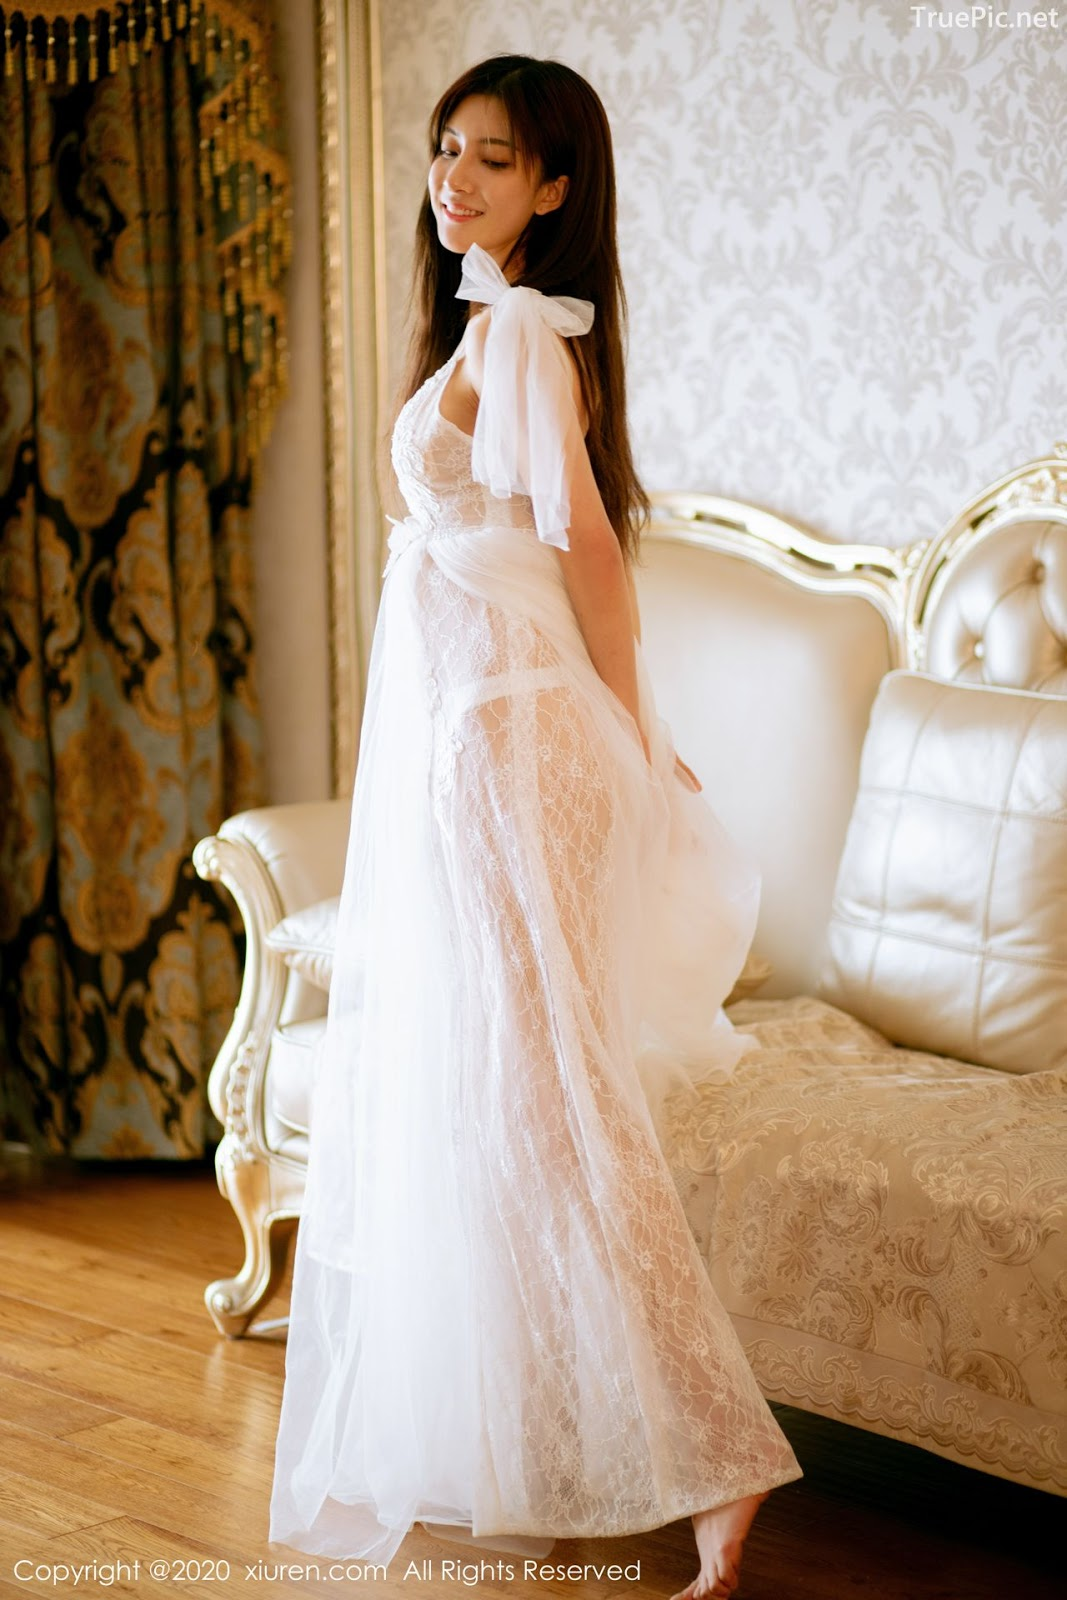 XIUREN No.1914 - Chinese model 林文文Yooki so Sexy with Transparent White Lace Dress - Picture 4